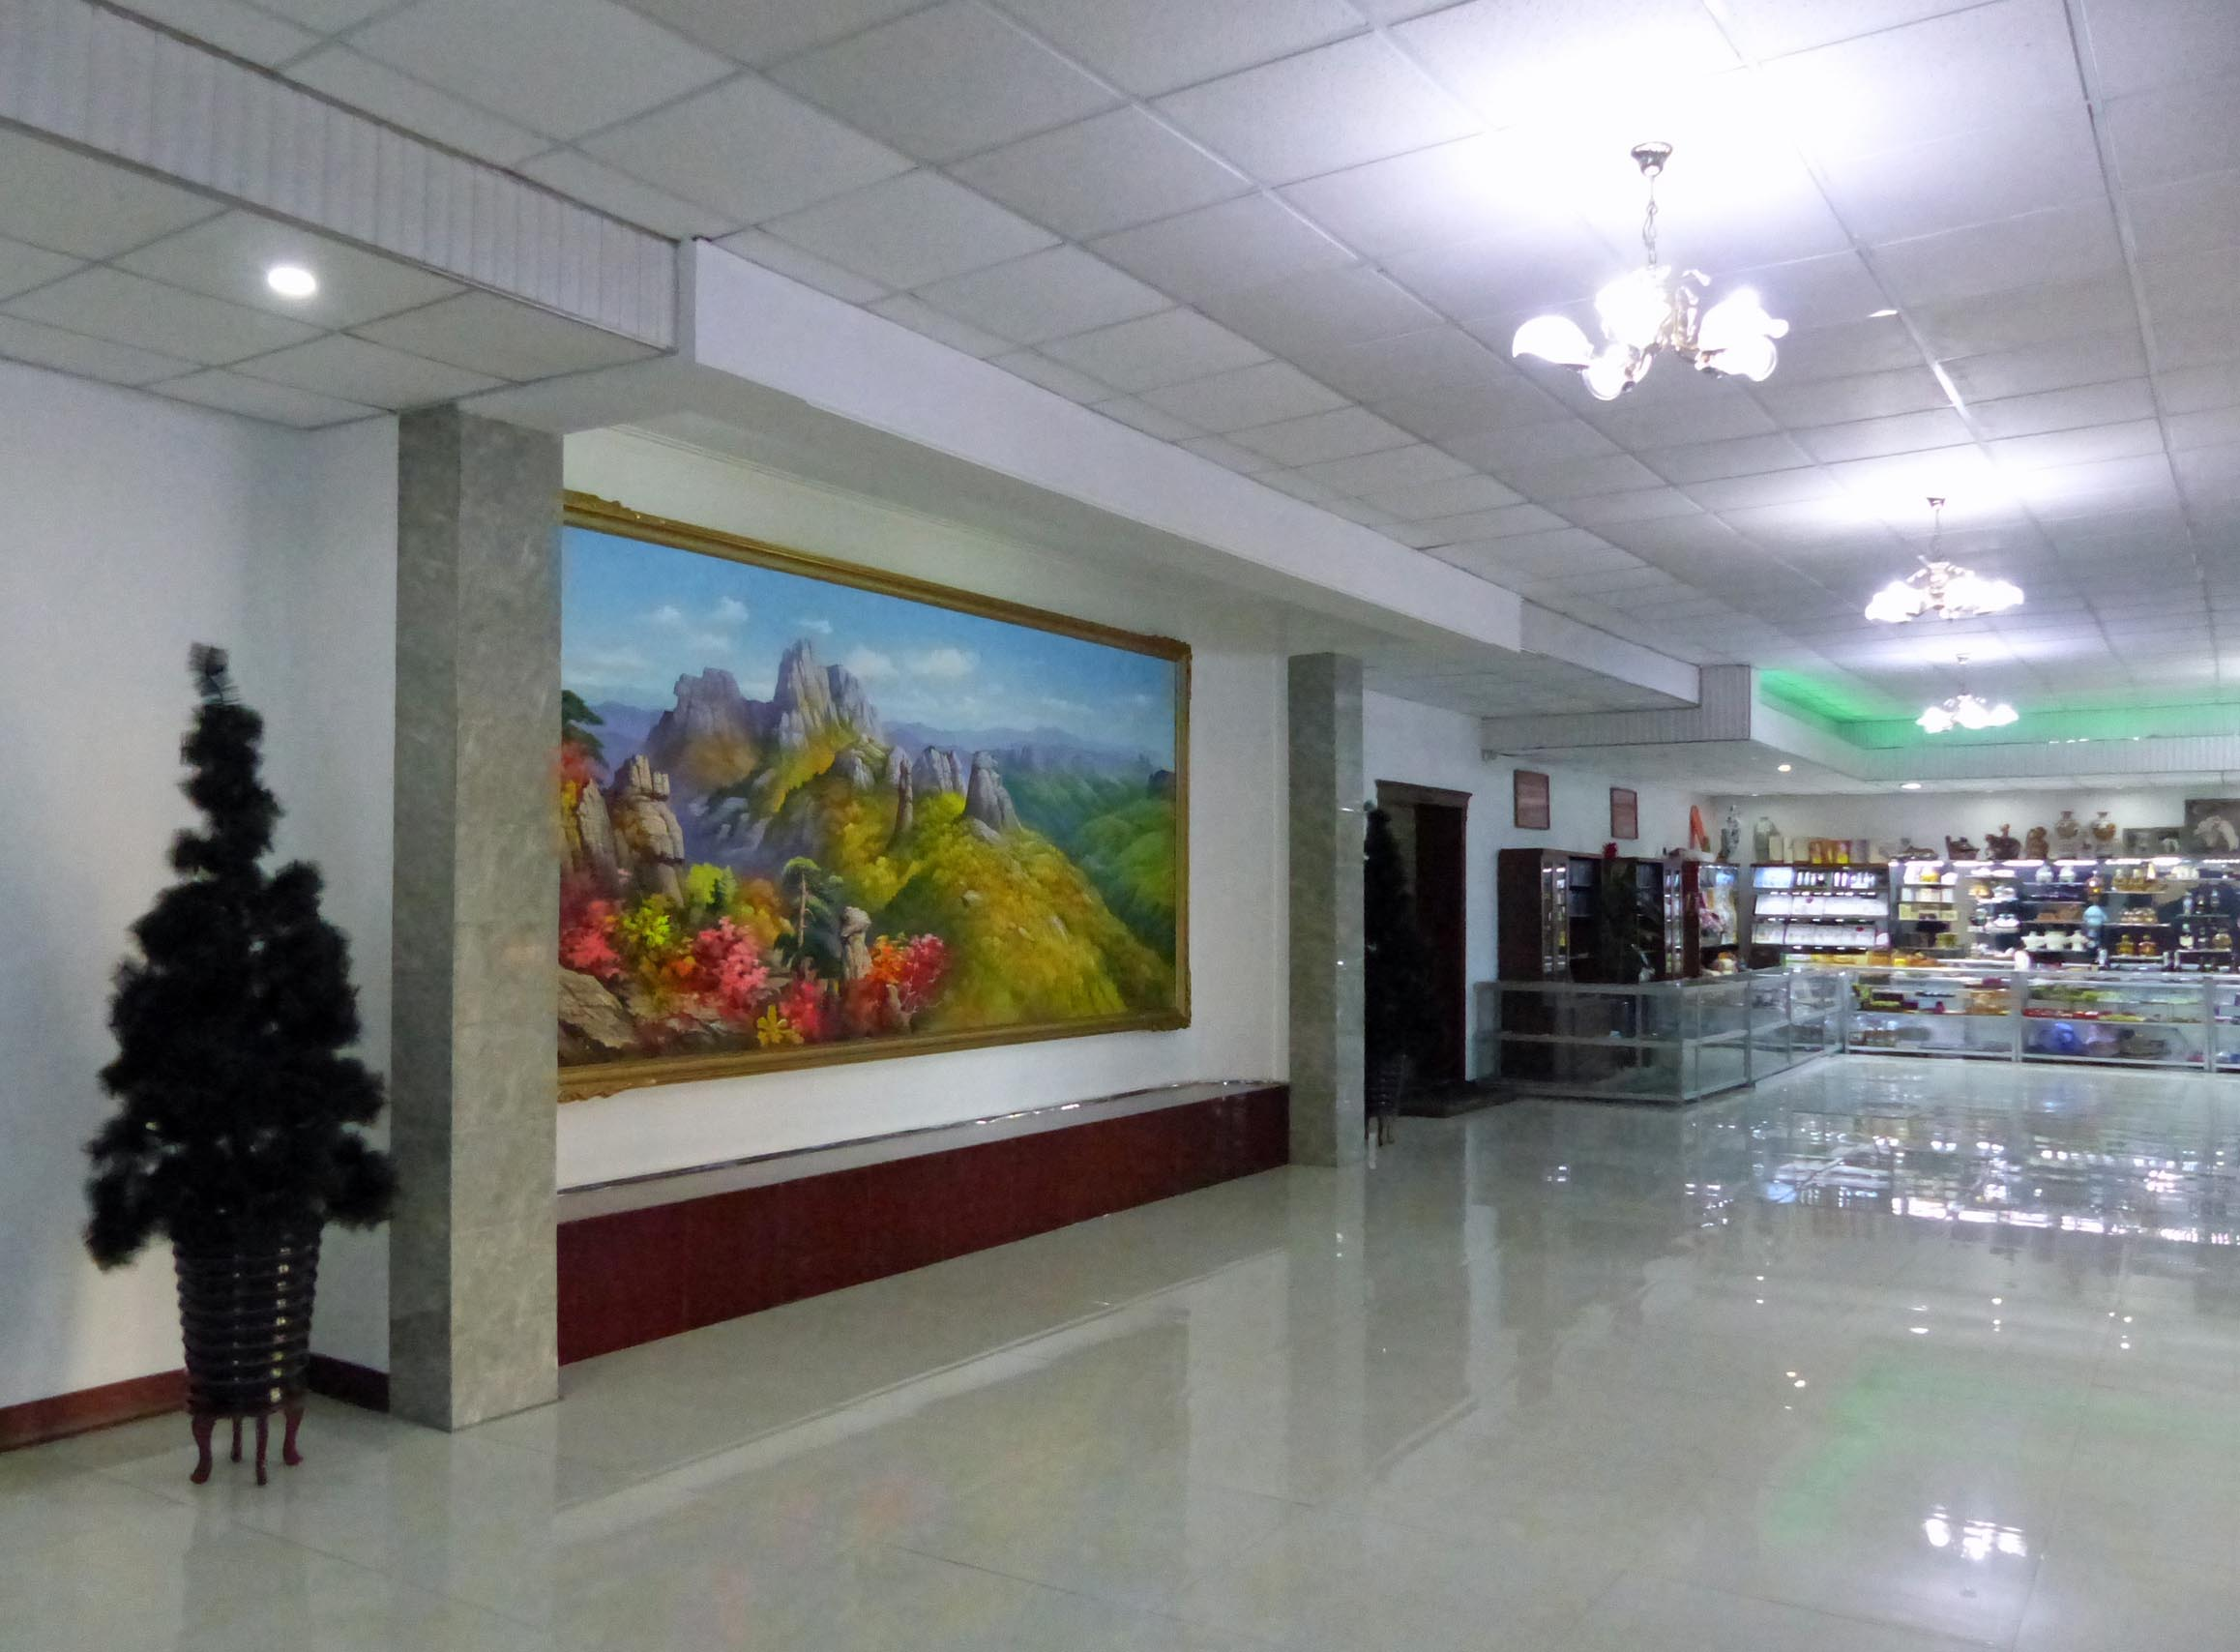 Hotel lobby with shiny floor and big landscape painting